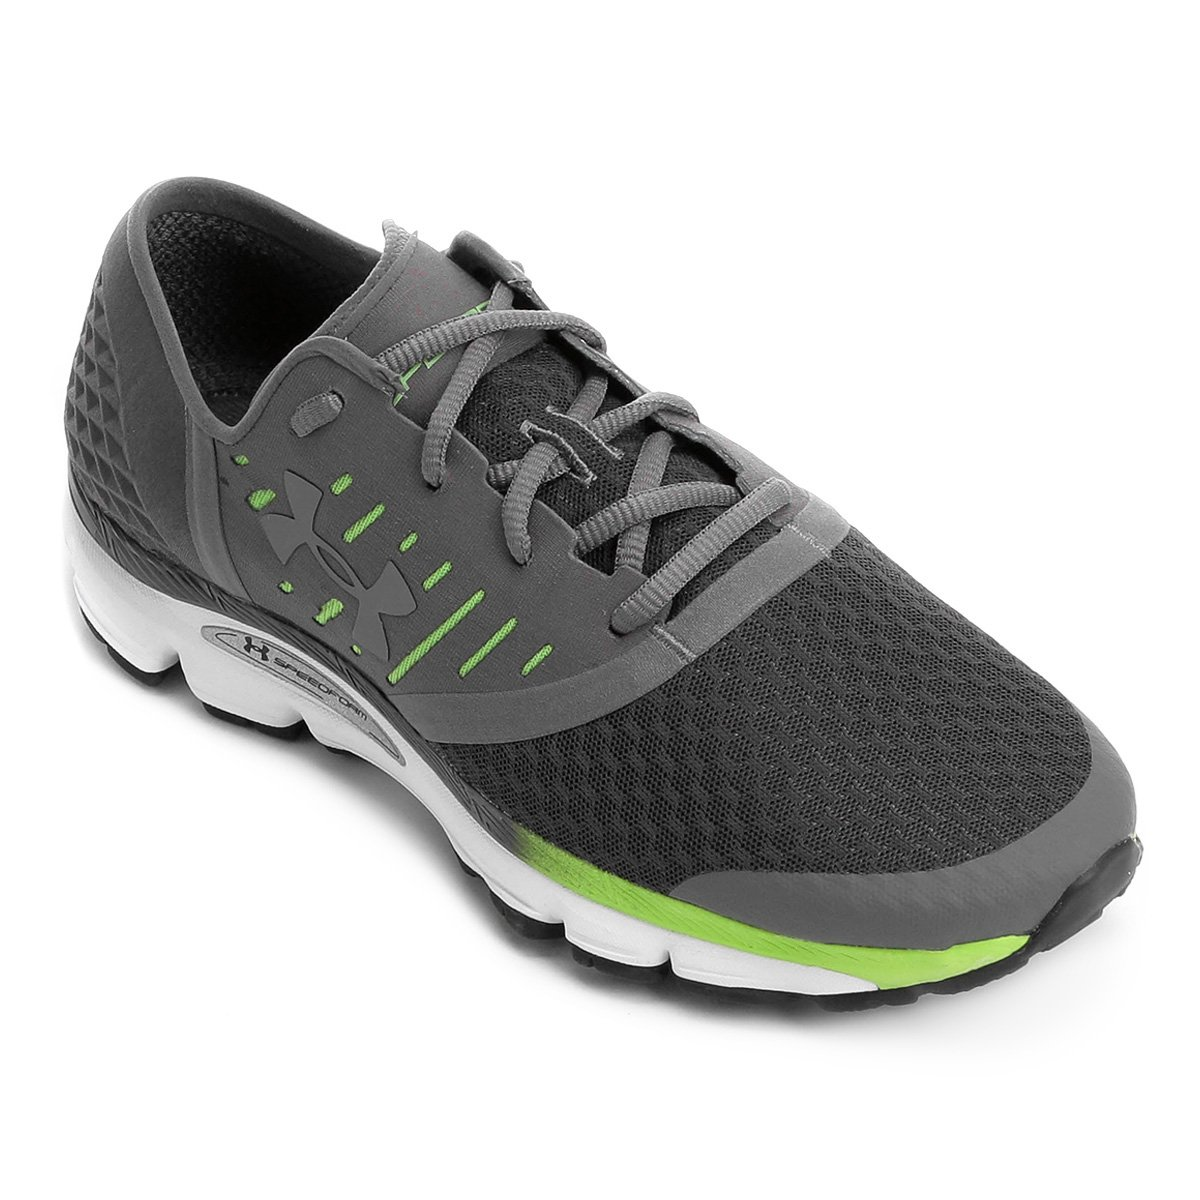 24fc929d72c Tênis Under Armour Speedform Intake SA Masculino